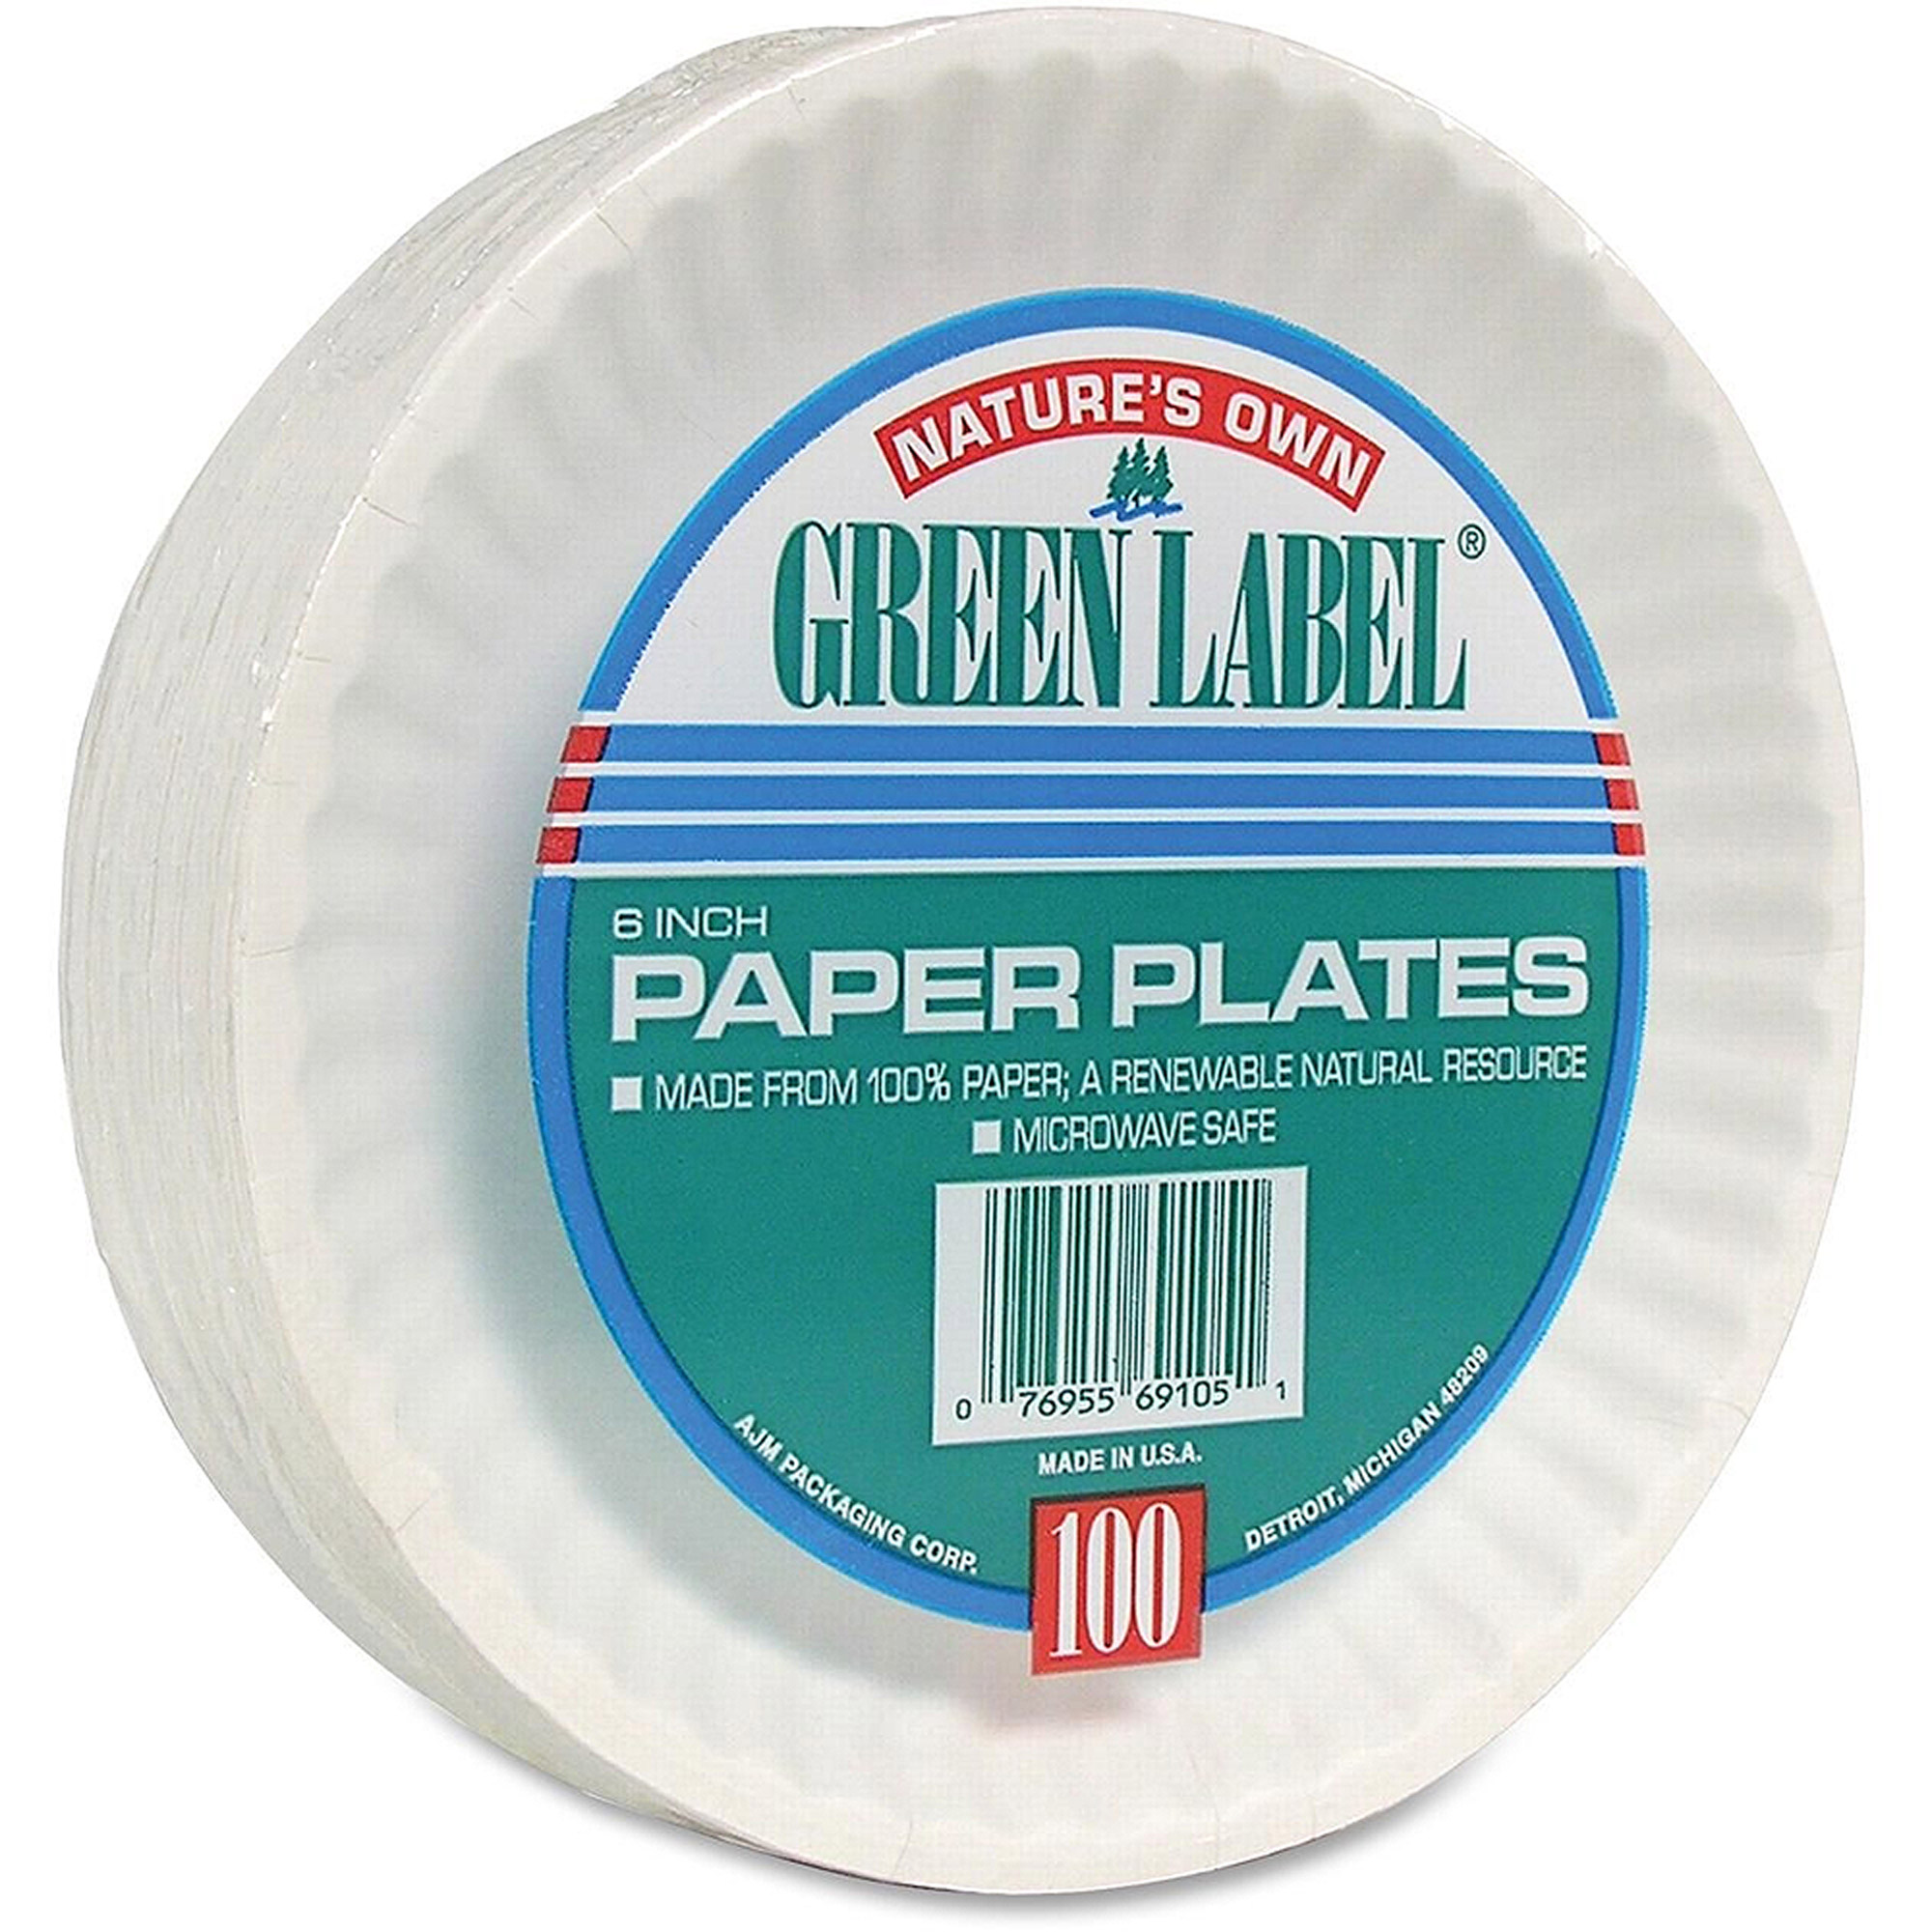 "AJM Nature's Own Green Label Economy Paper Plates, White, 6"", 1000 count"